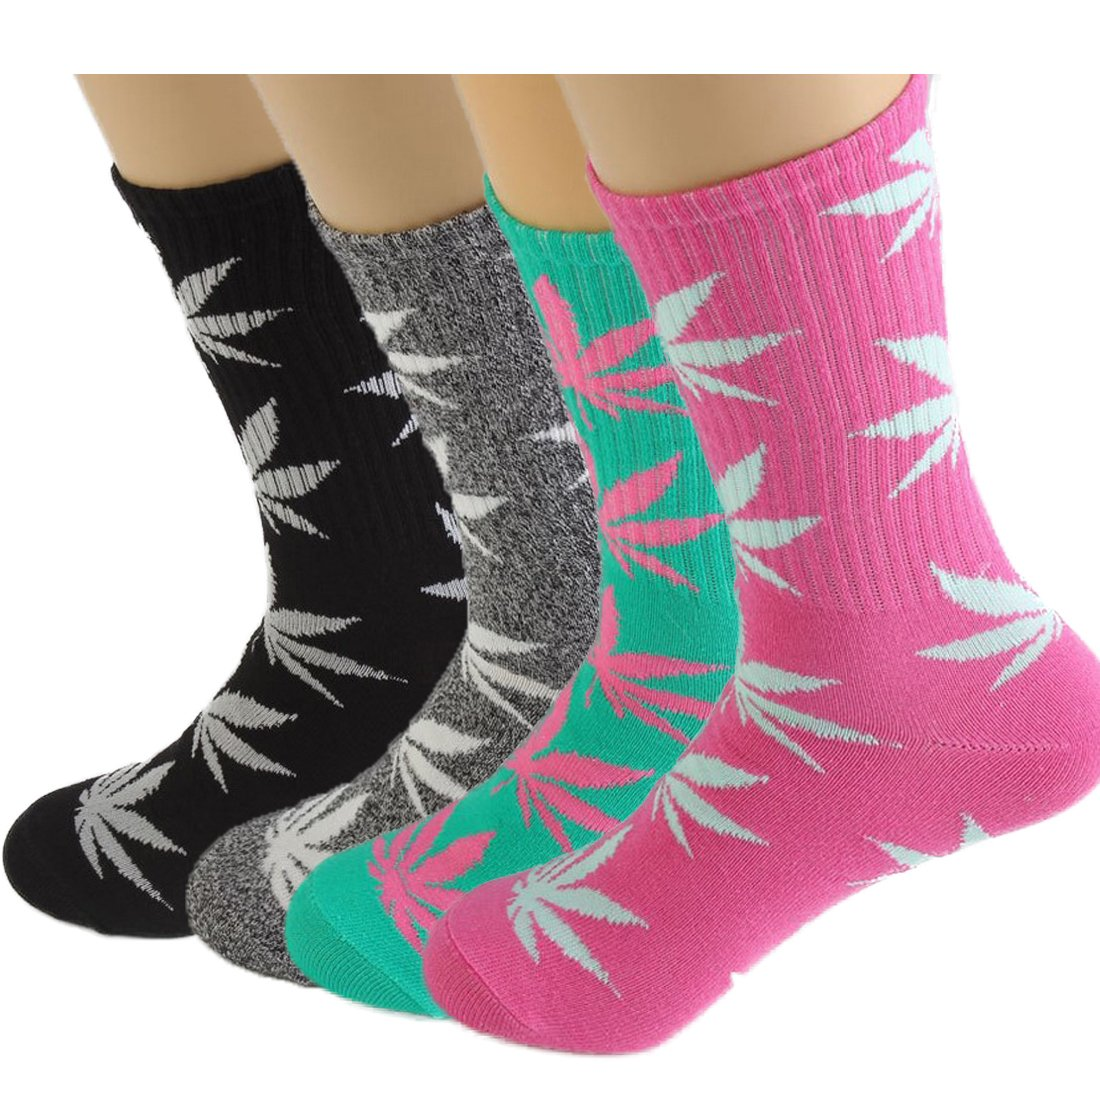 Lucky Ben 4pair-pack Marijuana Weed Leaf Printed Cotton High Socks, Mix Colors, fit for shoe size 7-11